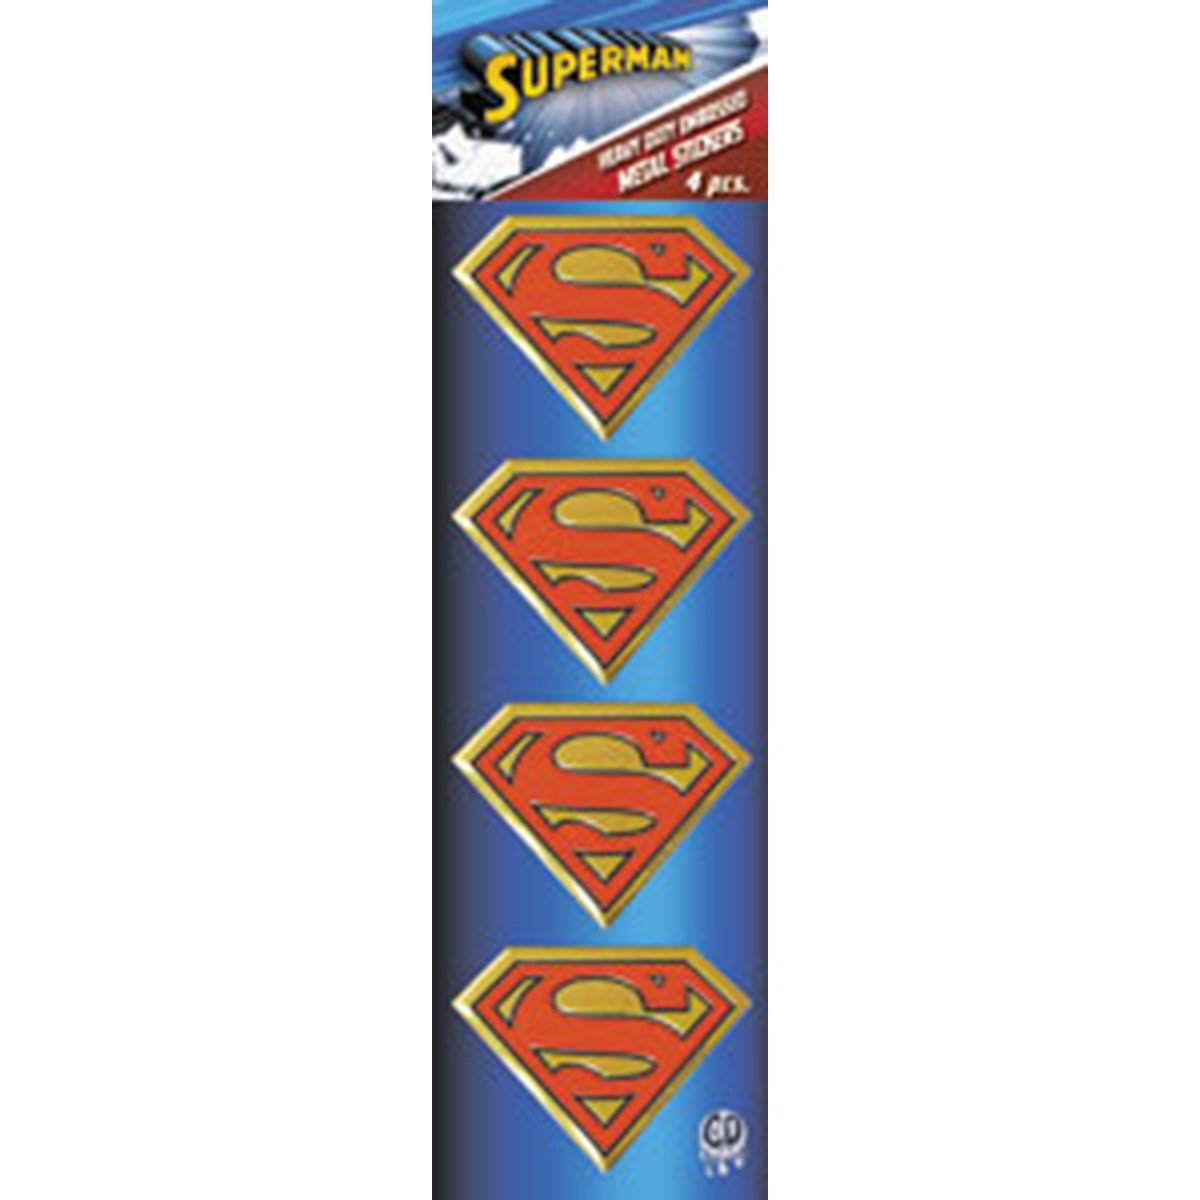 Dc Comics Licensed Heavy Duty Embossed Metal Stickers 4/Pkg-Superman Logo 1.125'X1.5' Officially Licensed & Trademarked Products S-DC-0146-M-S